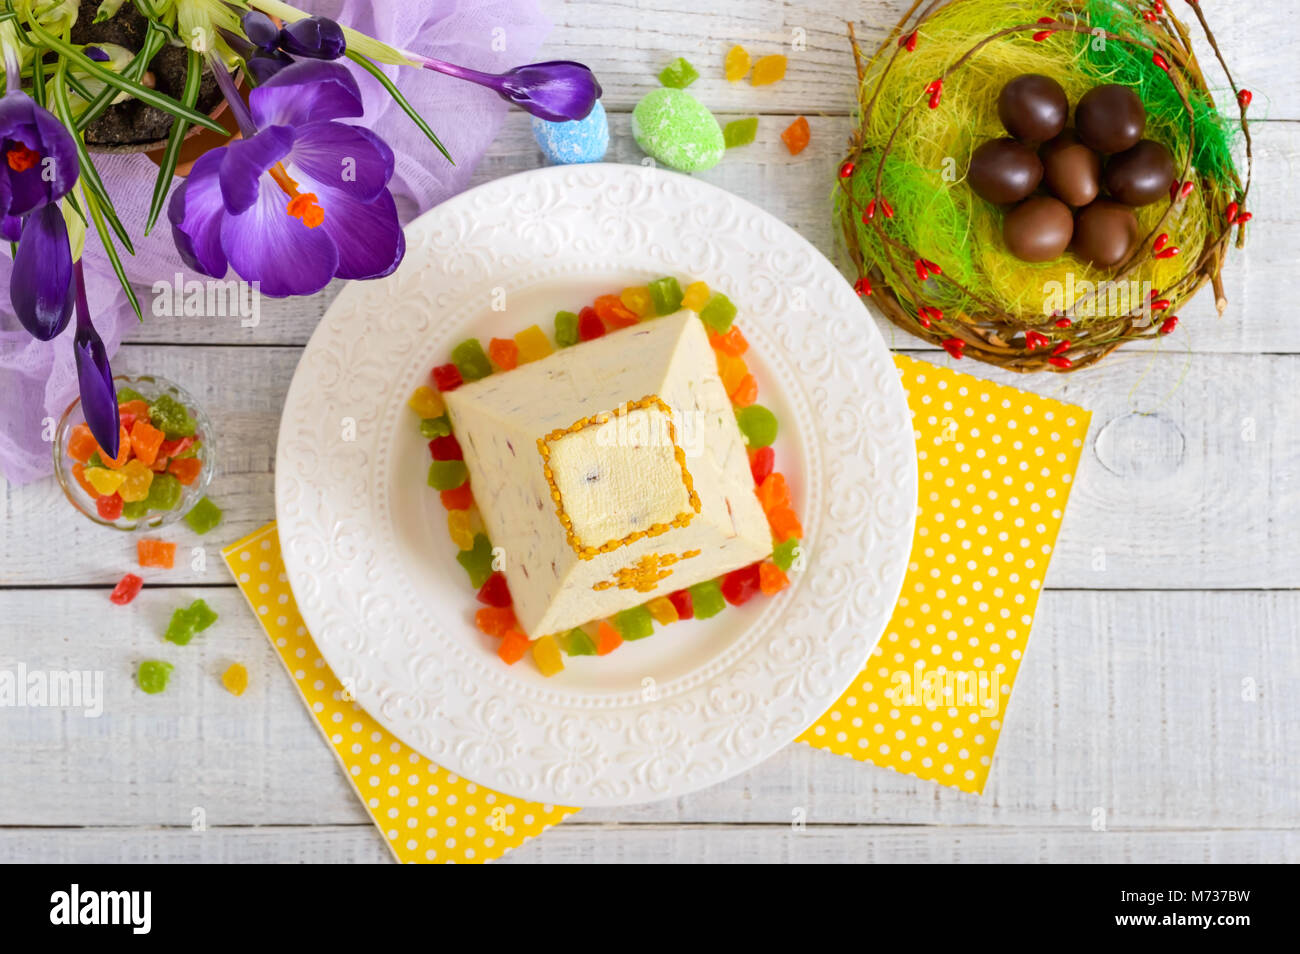 Traditional curd Easter cake with candied fruits and chocolate eggs, spring flowers crocus on the holiday light - Stock Image